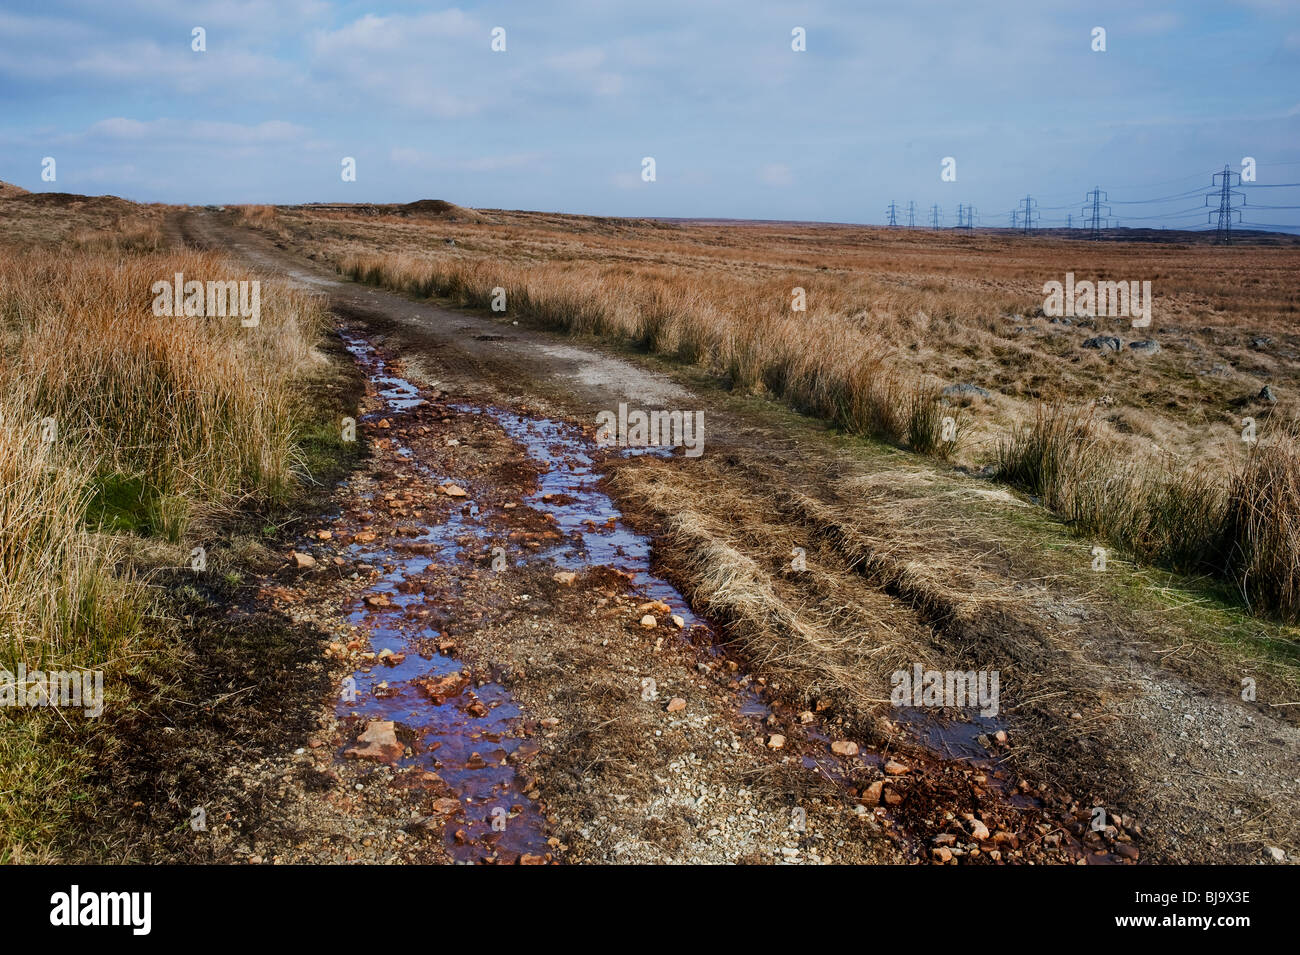 rutted road stock photos rutted road stock images page 2 alamy